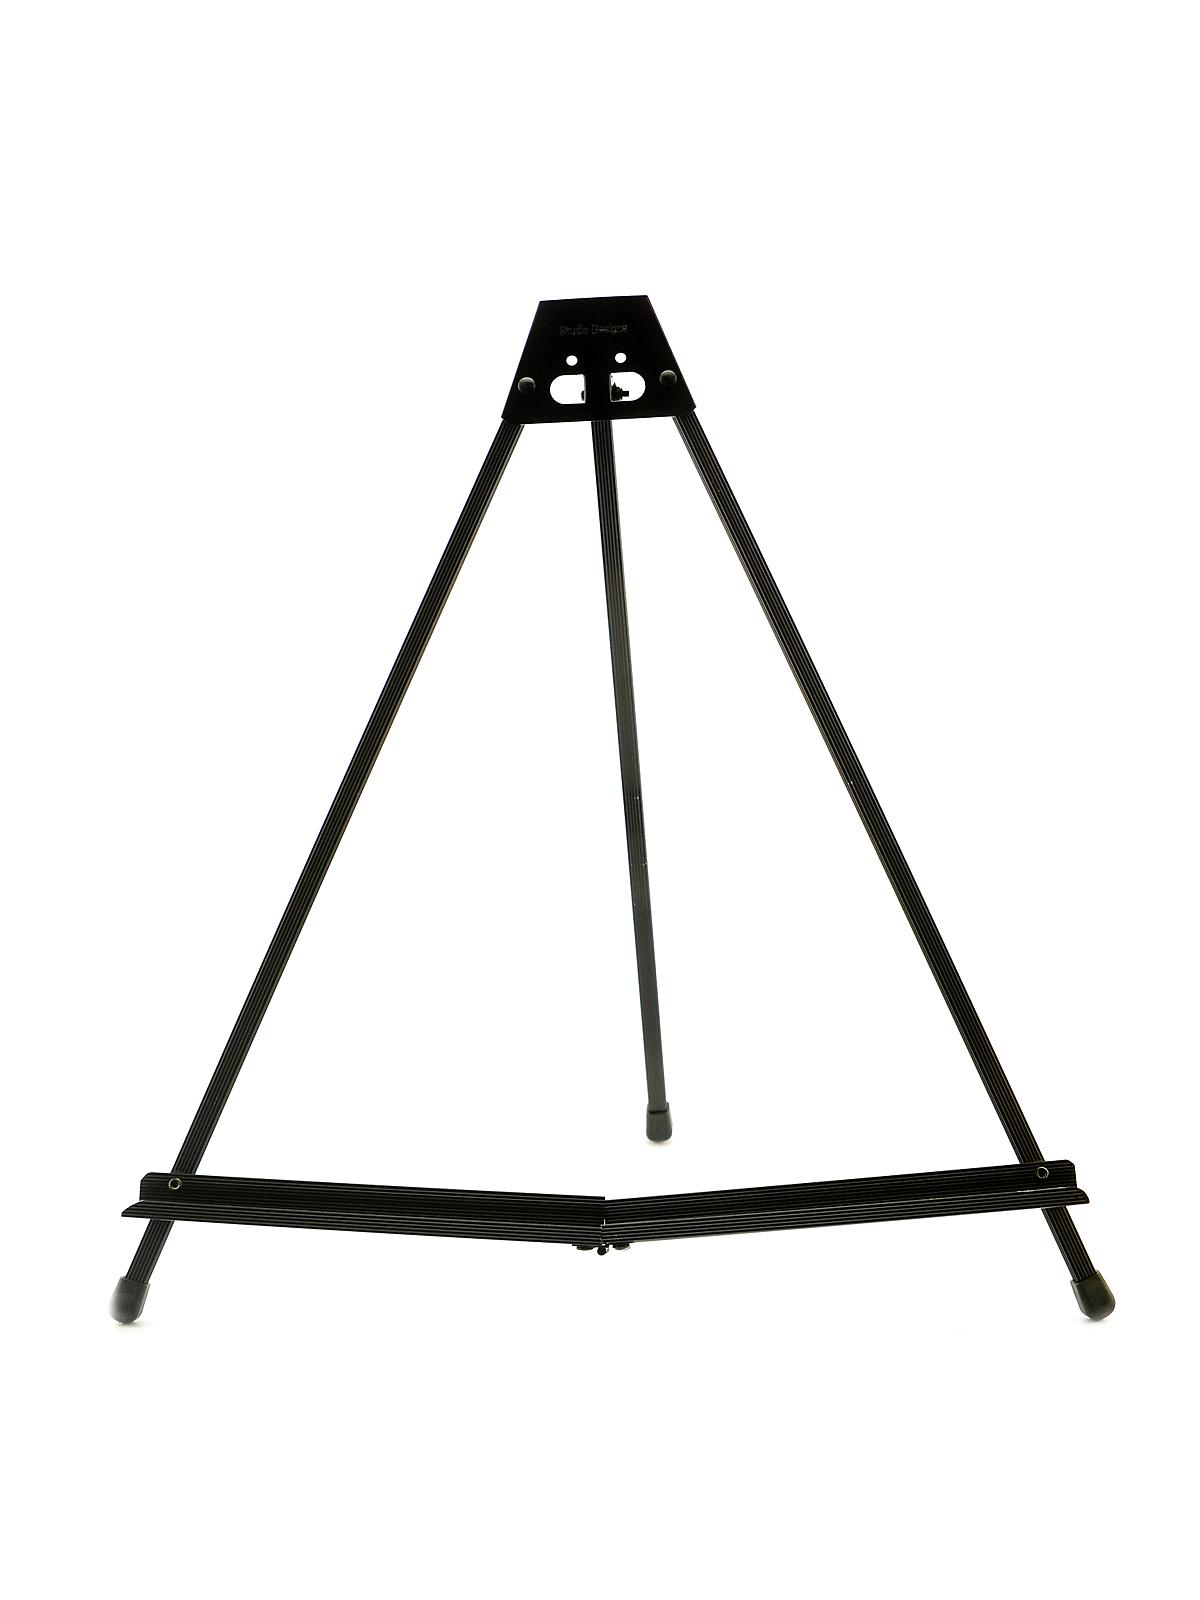 Light Weight Folding Easel